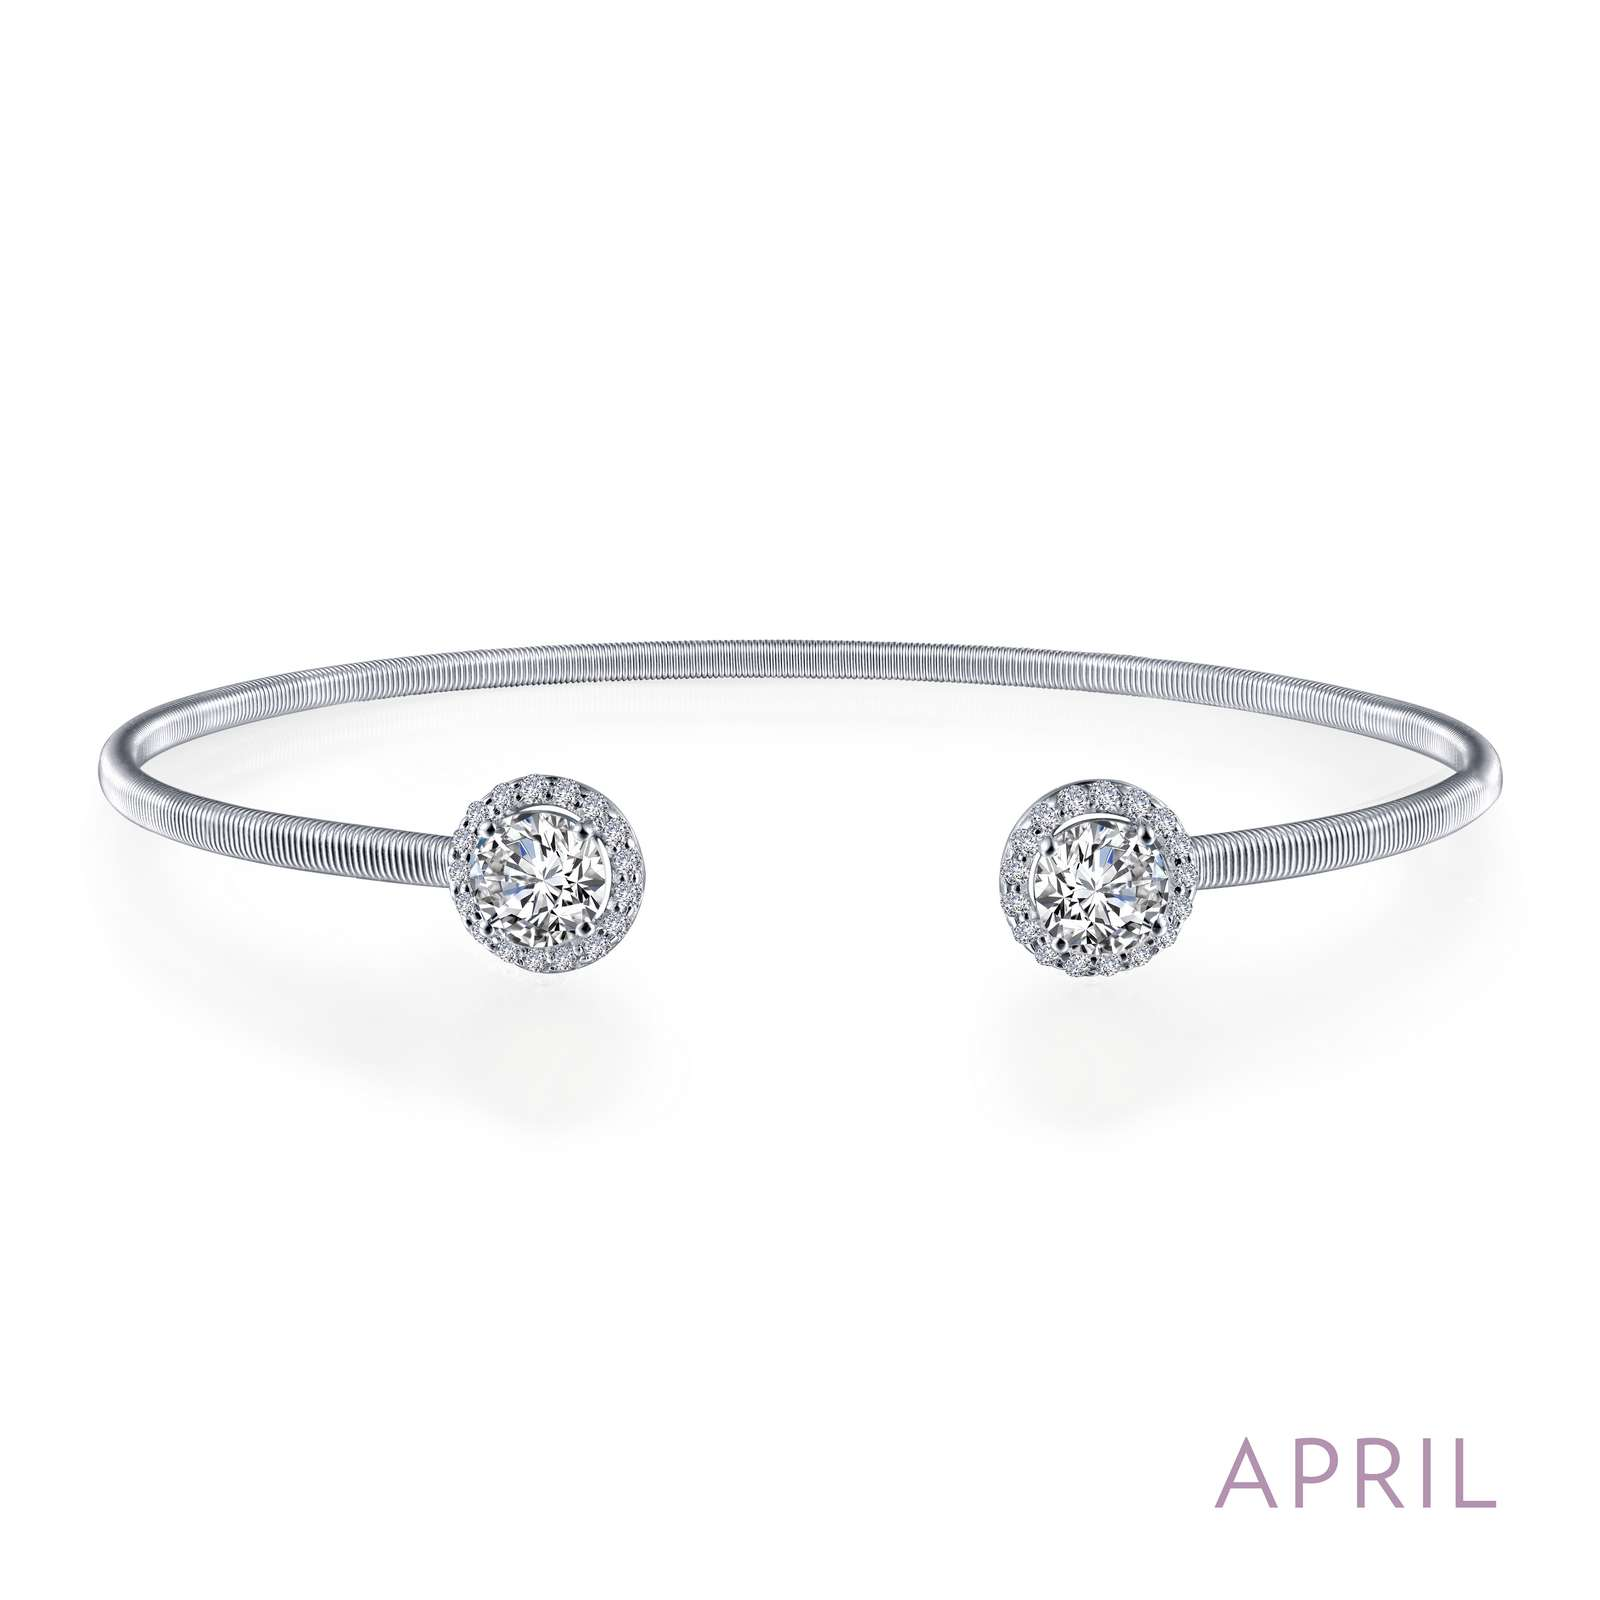 April - Diamond. Adorn yourself with Lafonn's birthstone jewelry. This flexible stackable open cuff halo bangle bracelet is set with Lafonn's signature Lassaire simulated diamonds. Bracelet is in sterling silver bonded with platinum.